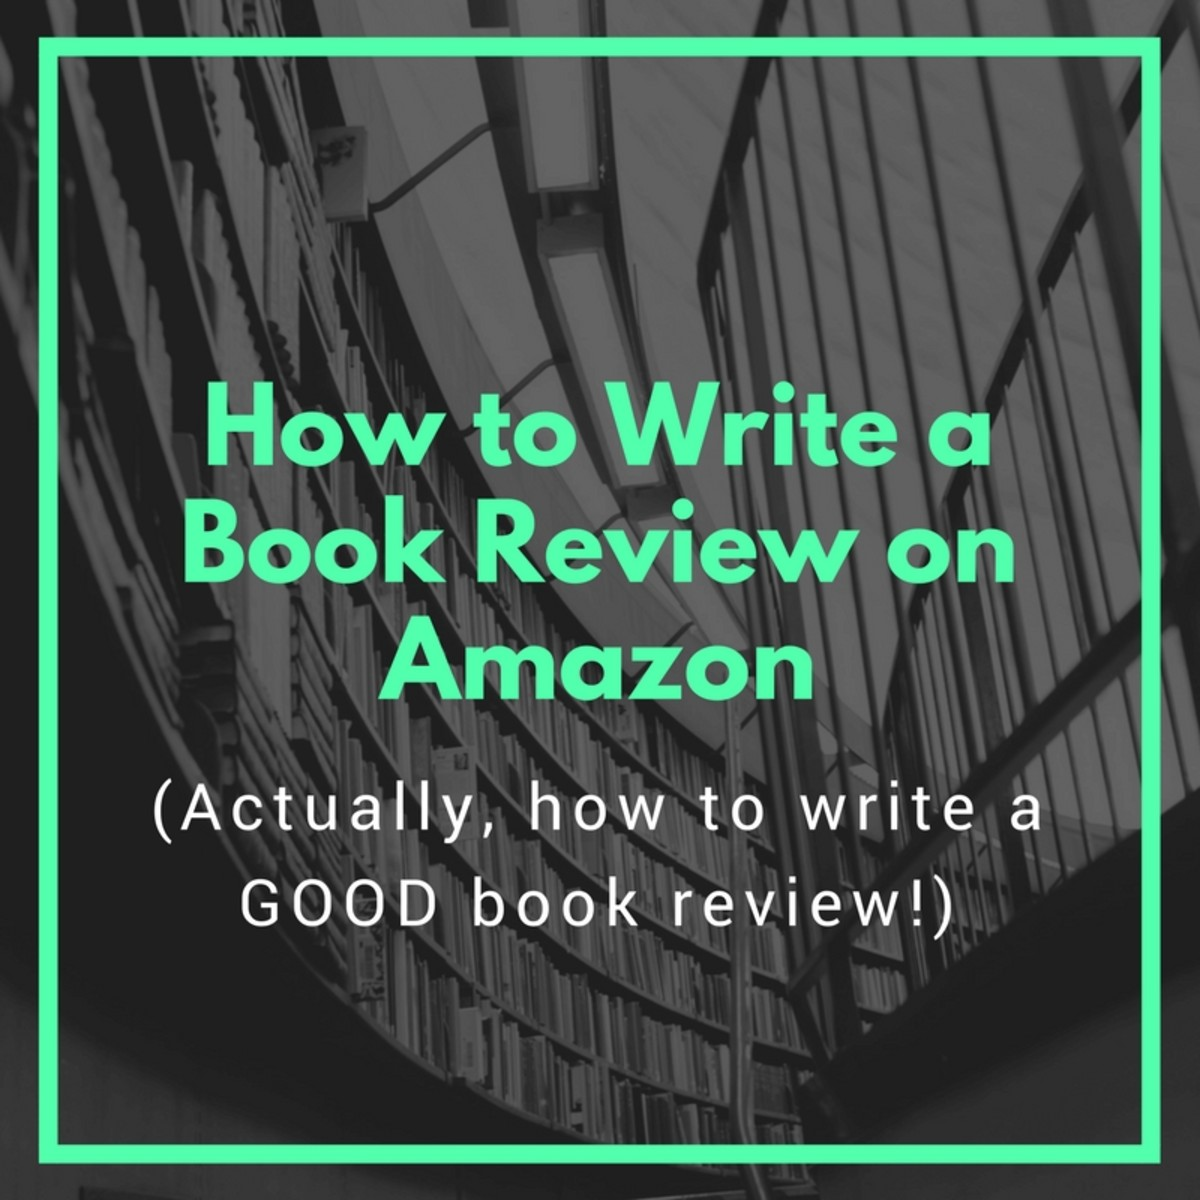 How to Write a Book Review on Amazon